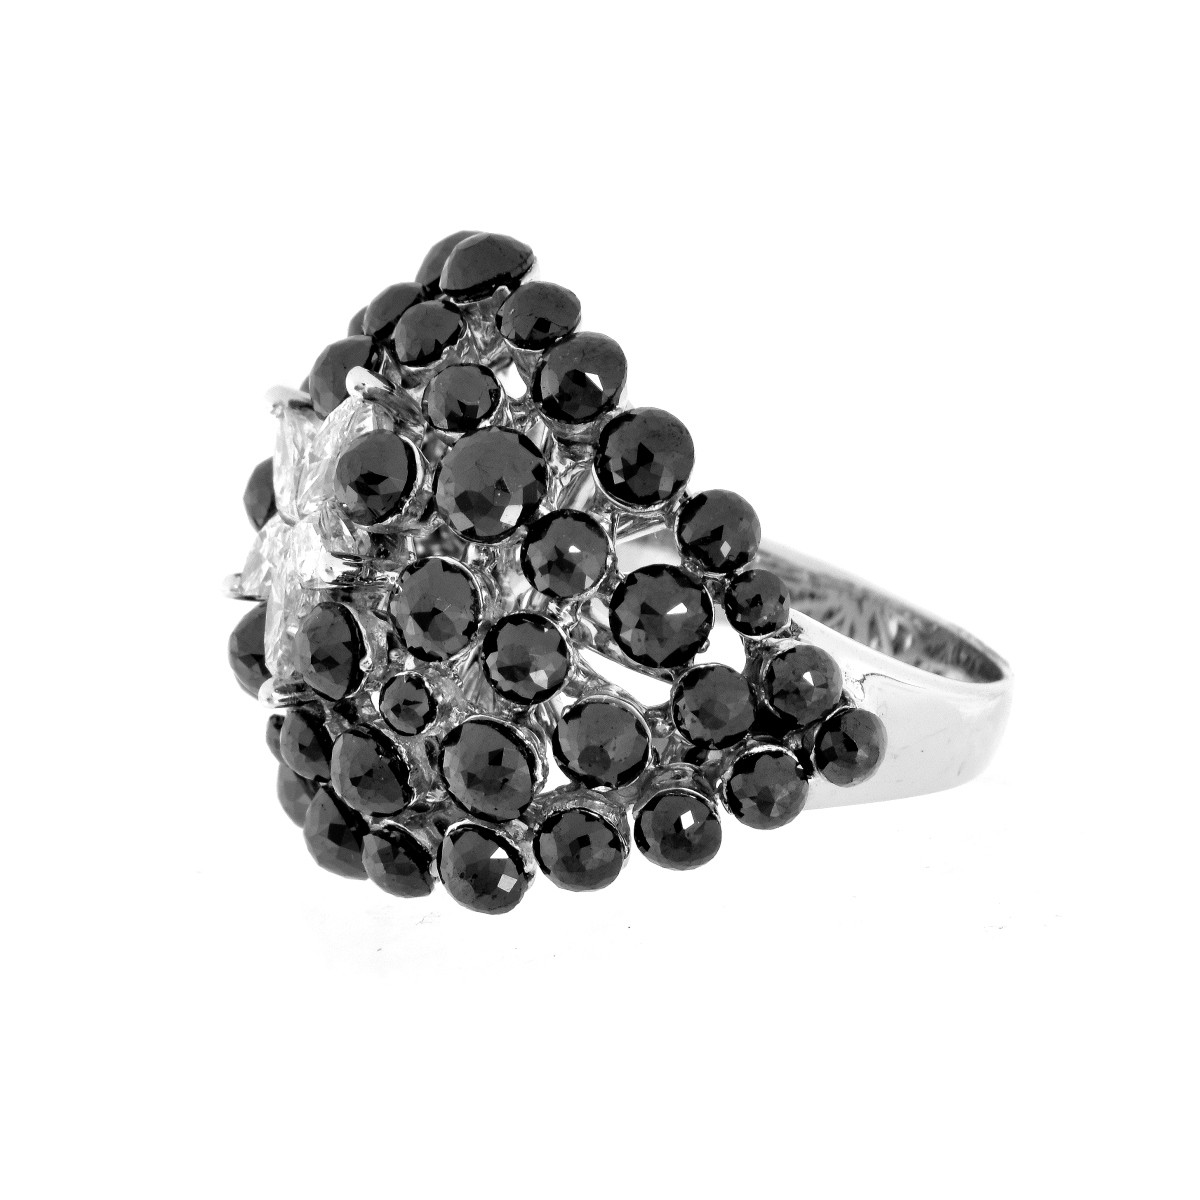 Charade Black and White Diamond Ring